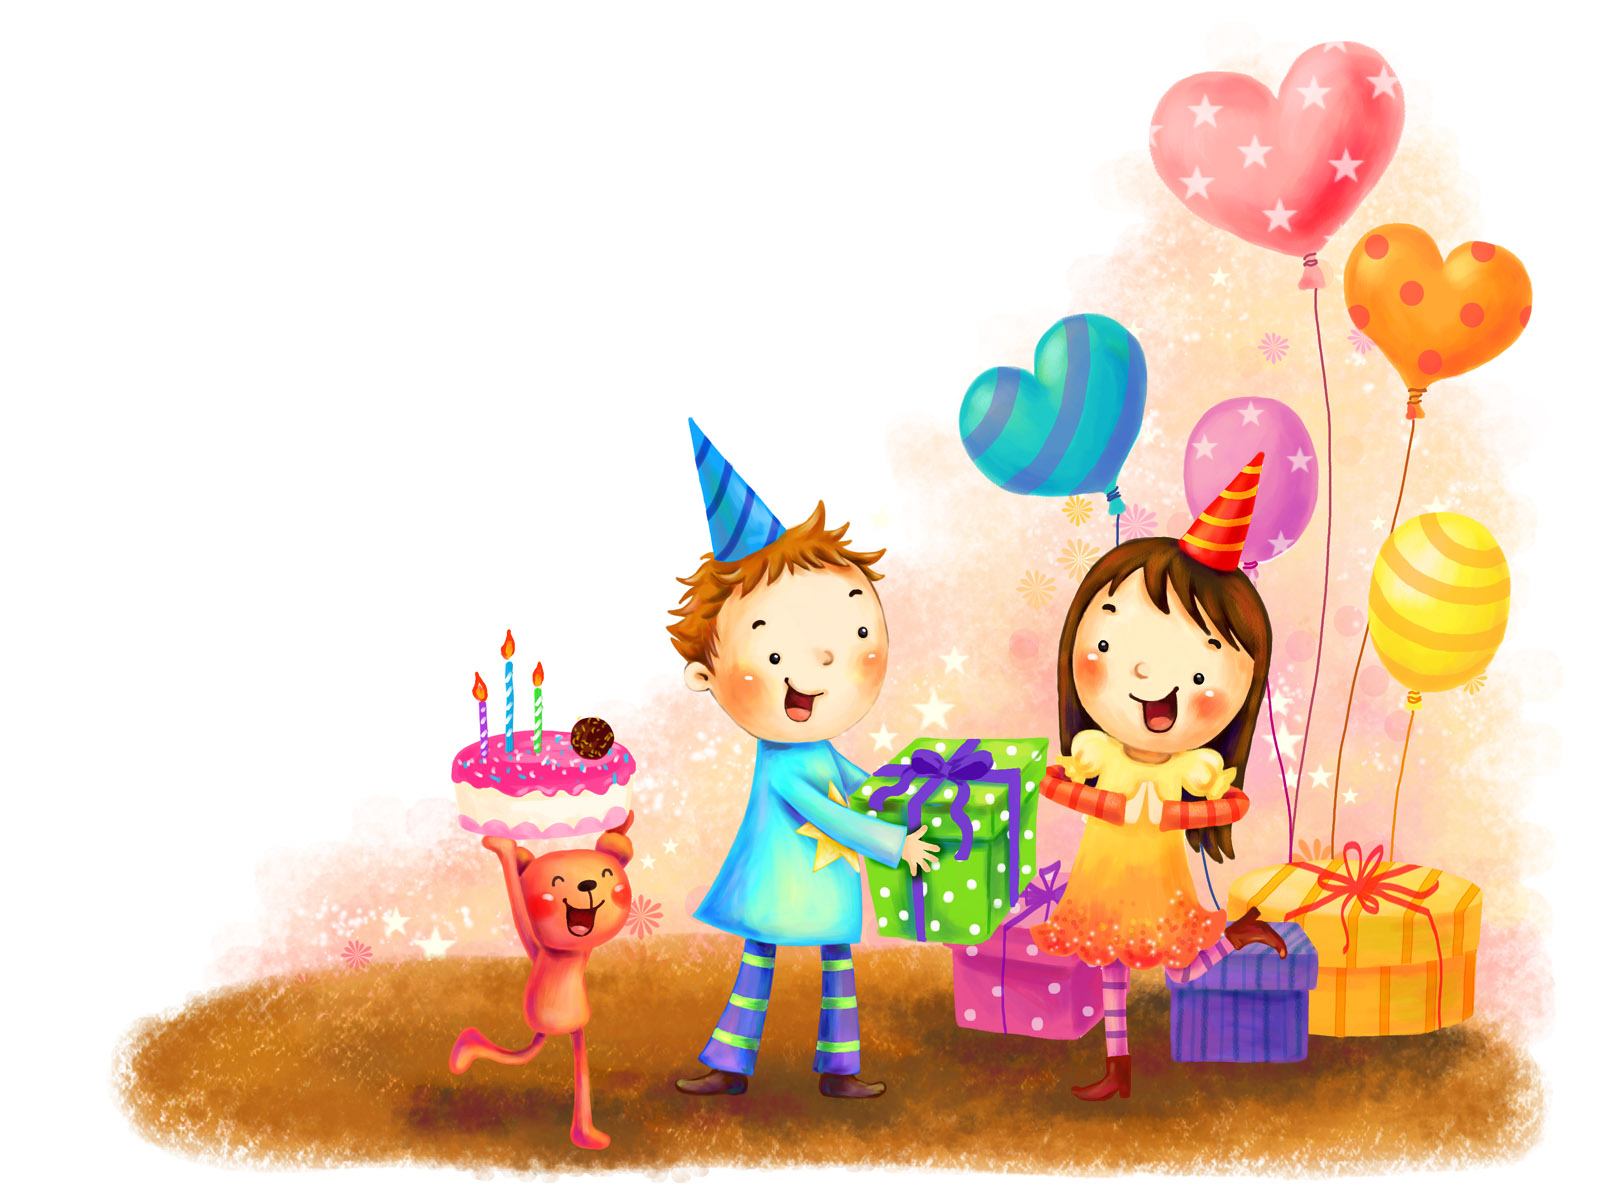 meaningful-birthday-poems-that-can-make-your-friends-touched-on-their-birthday-3